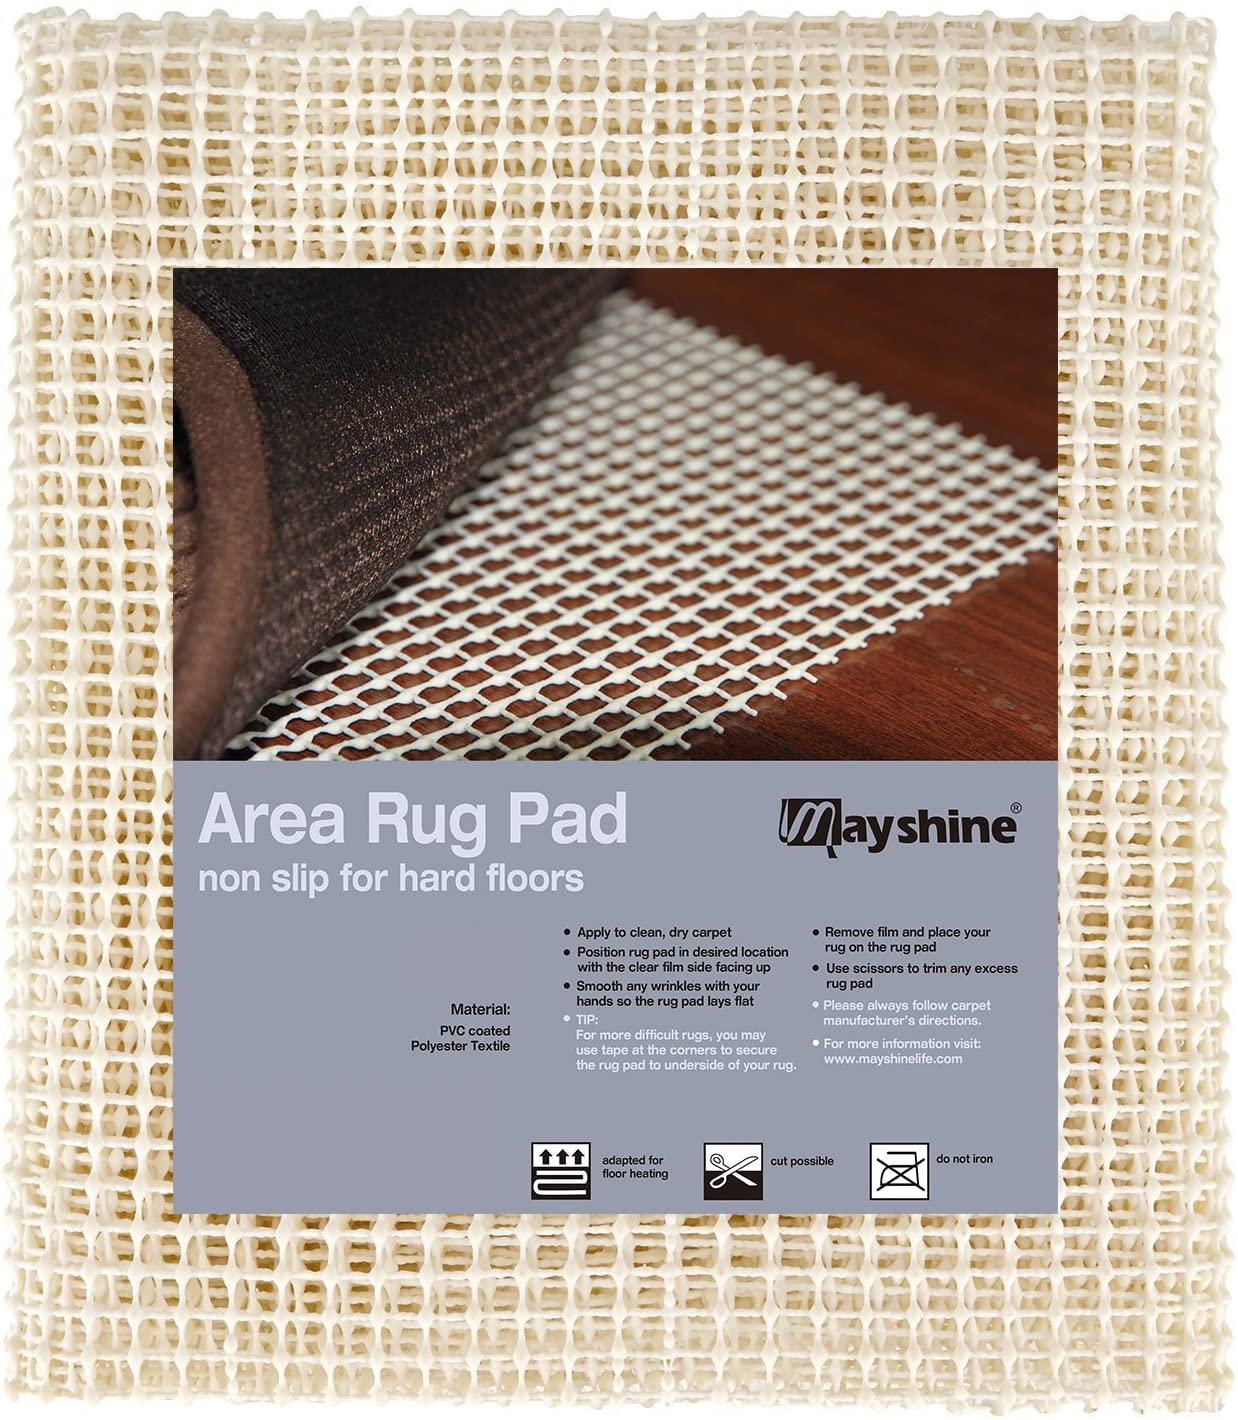 MAYSHINE Area Rug Gripper Pad (4x6 Feet), for Hard Floors, Provides Protection and Cushion for Area Rugs and Floors